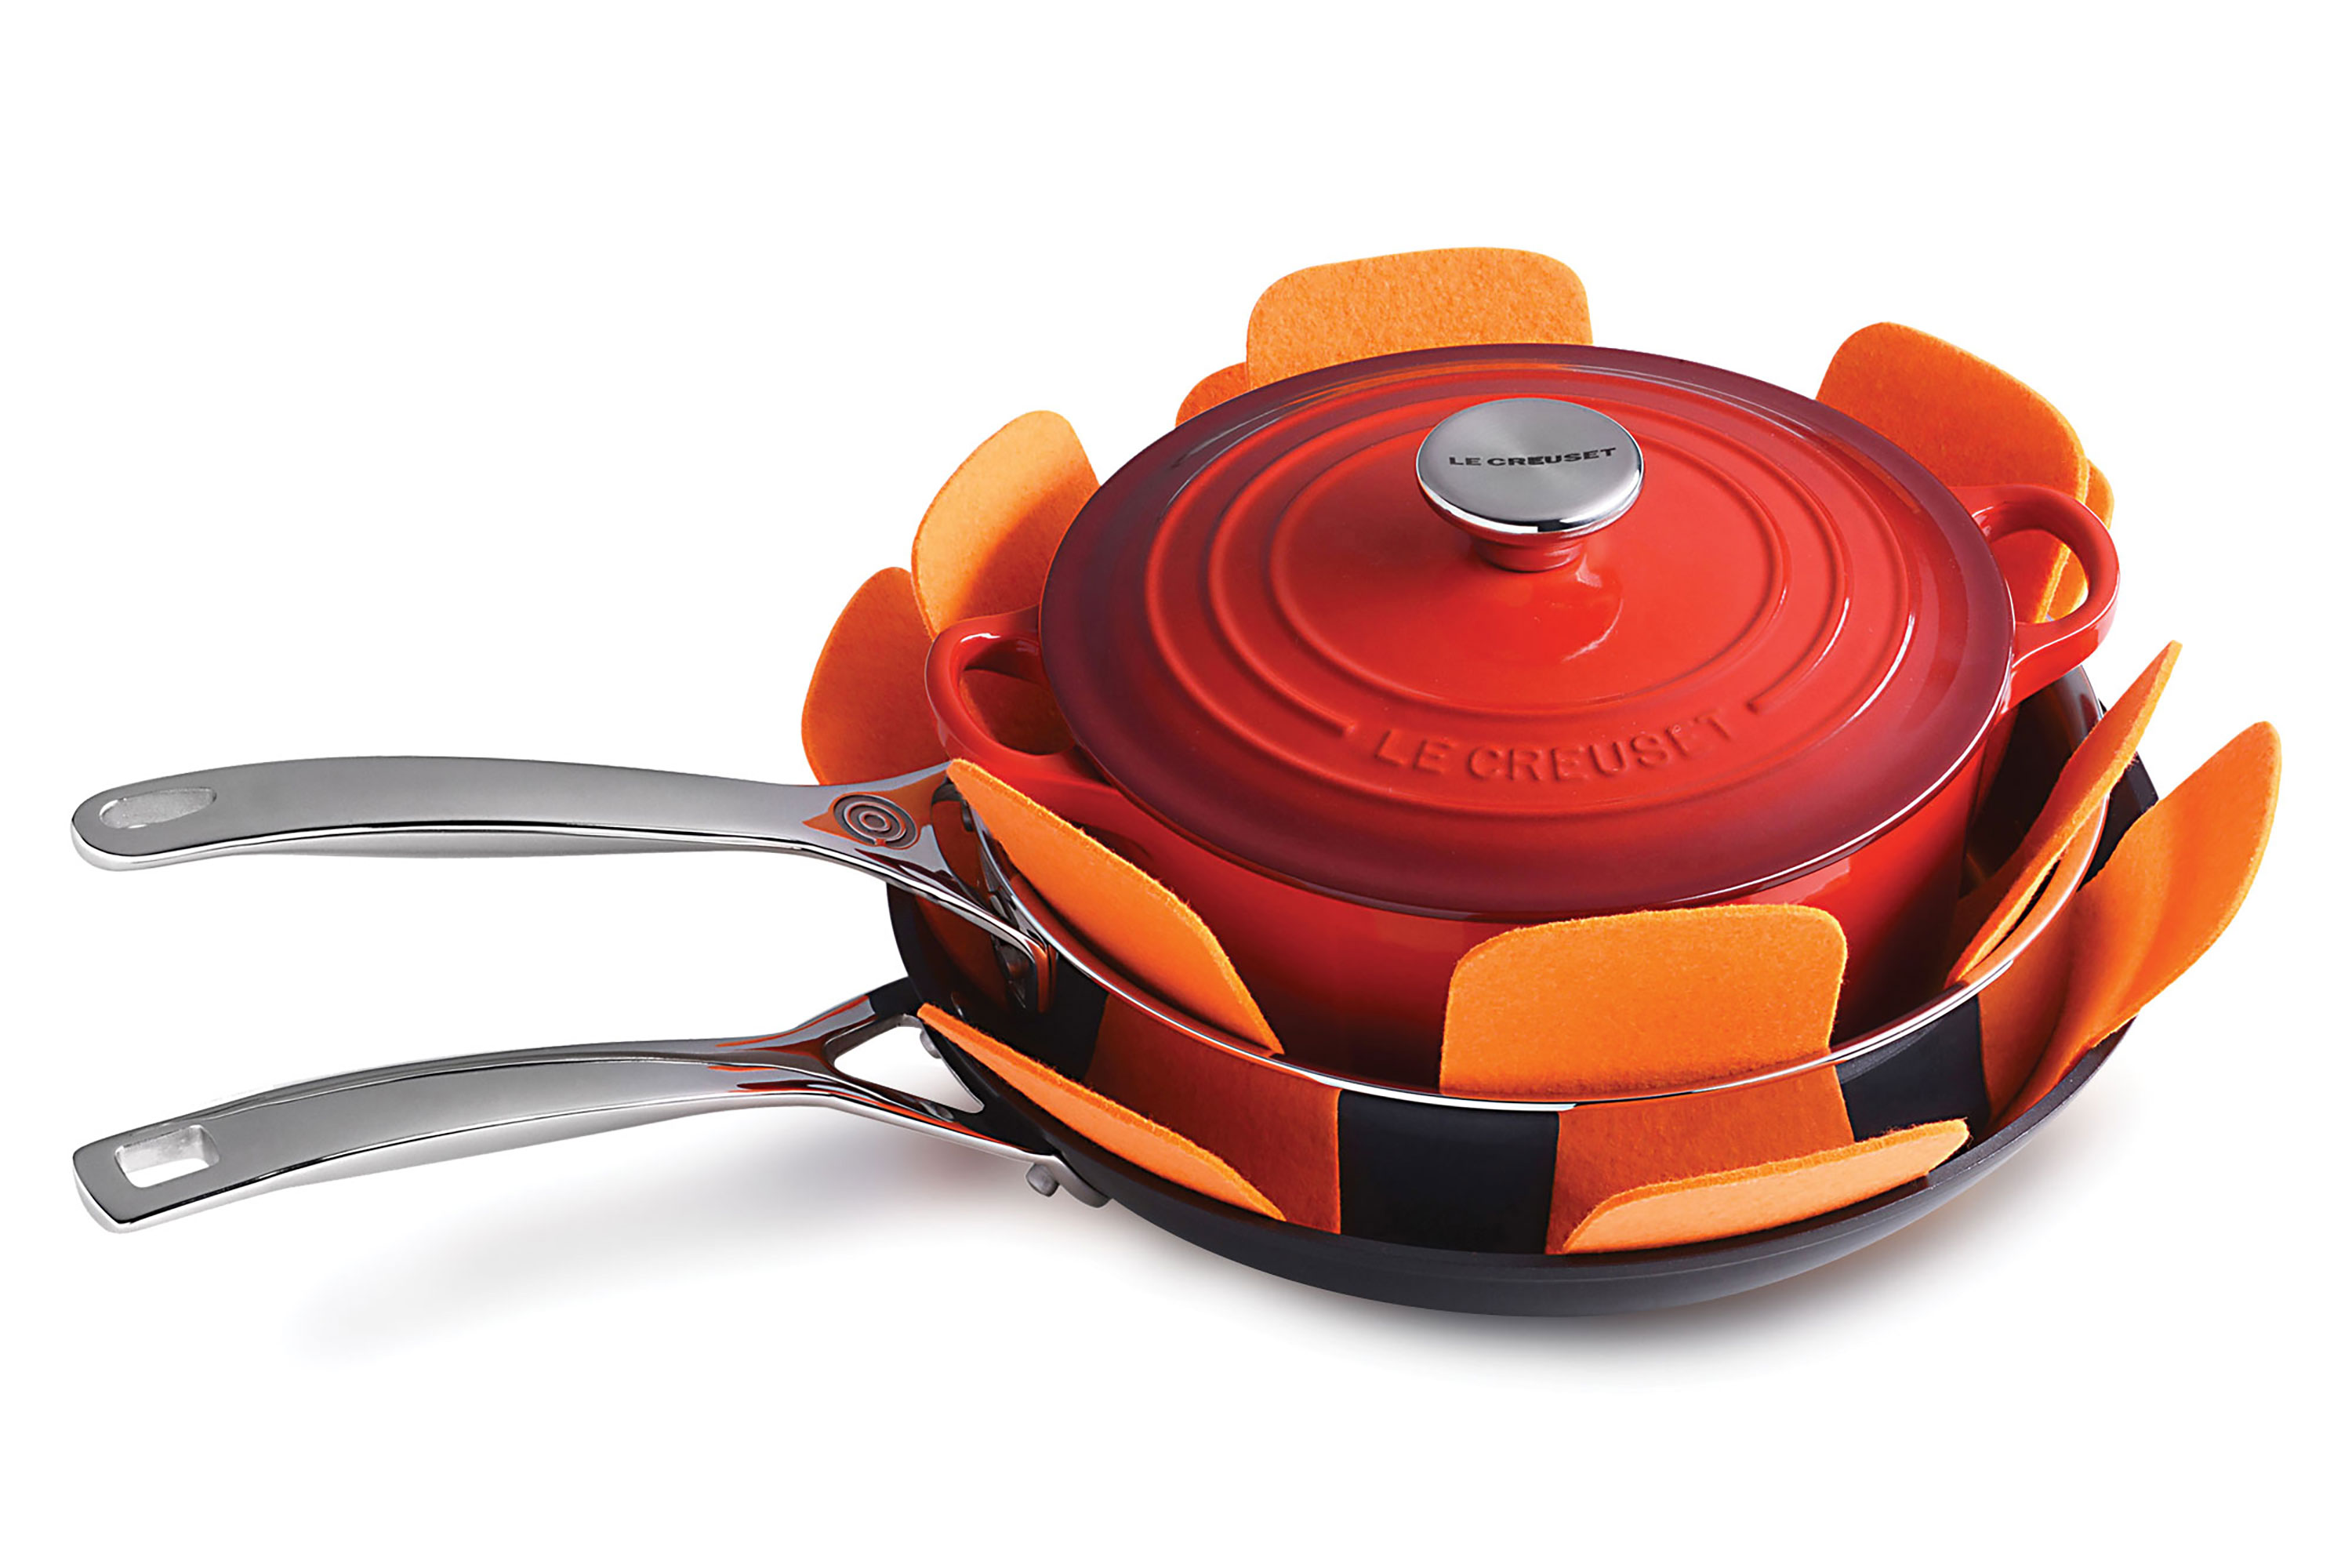 Le Creuset Felt Pan Protectors 3 Pack Cutlery And More